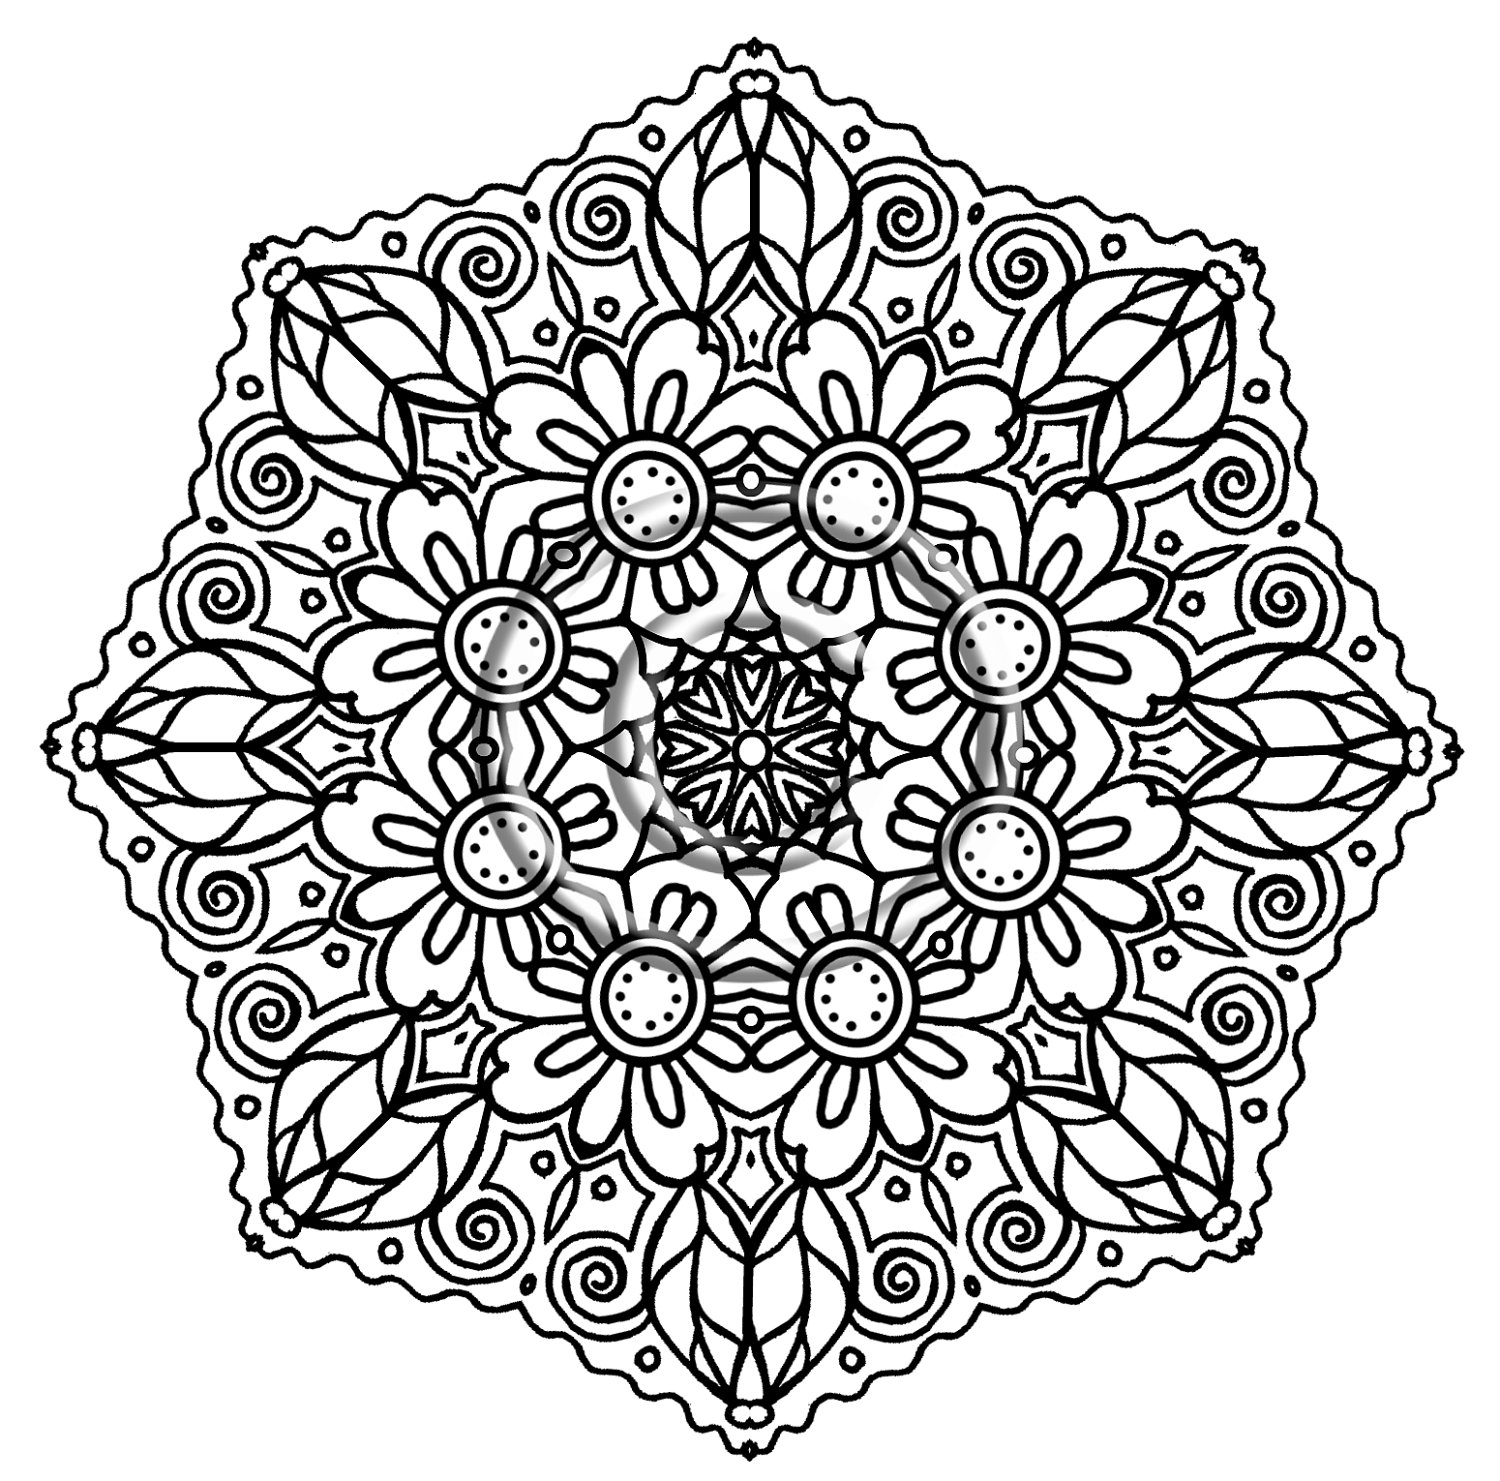 flower coloring book pages detailed flower coloring pages to download and print for free flower book coloring pages